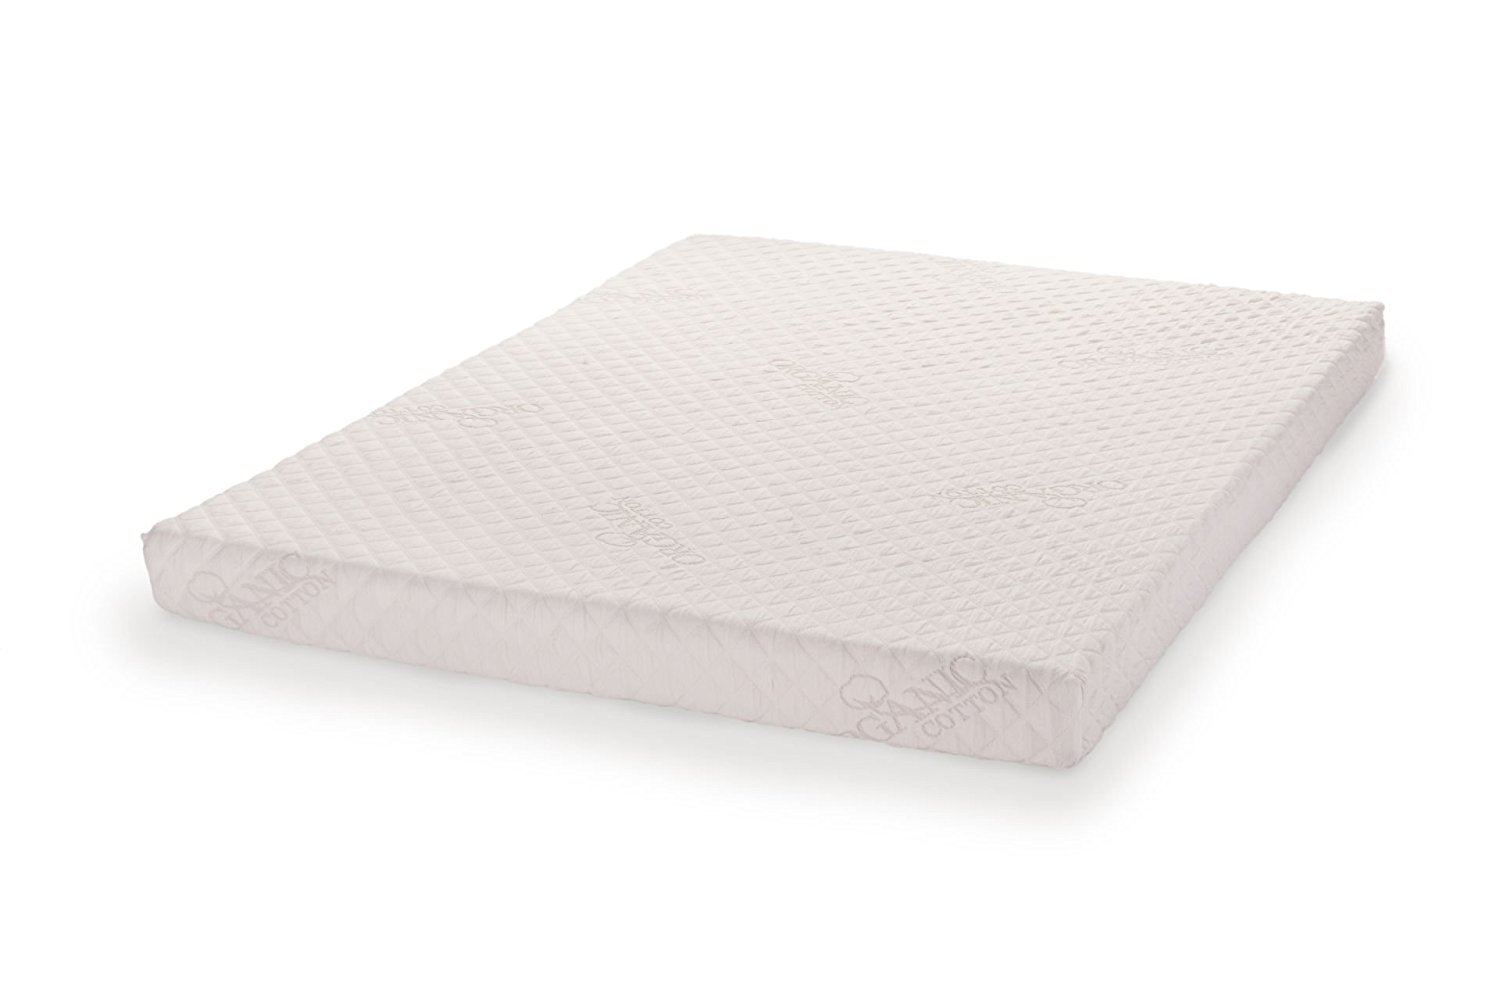 Amazon.com: PlushBeds Natural Latex Sofa Bed Mattress - Full: Kitchen & Dining